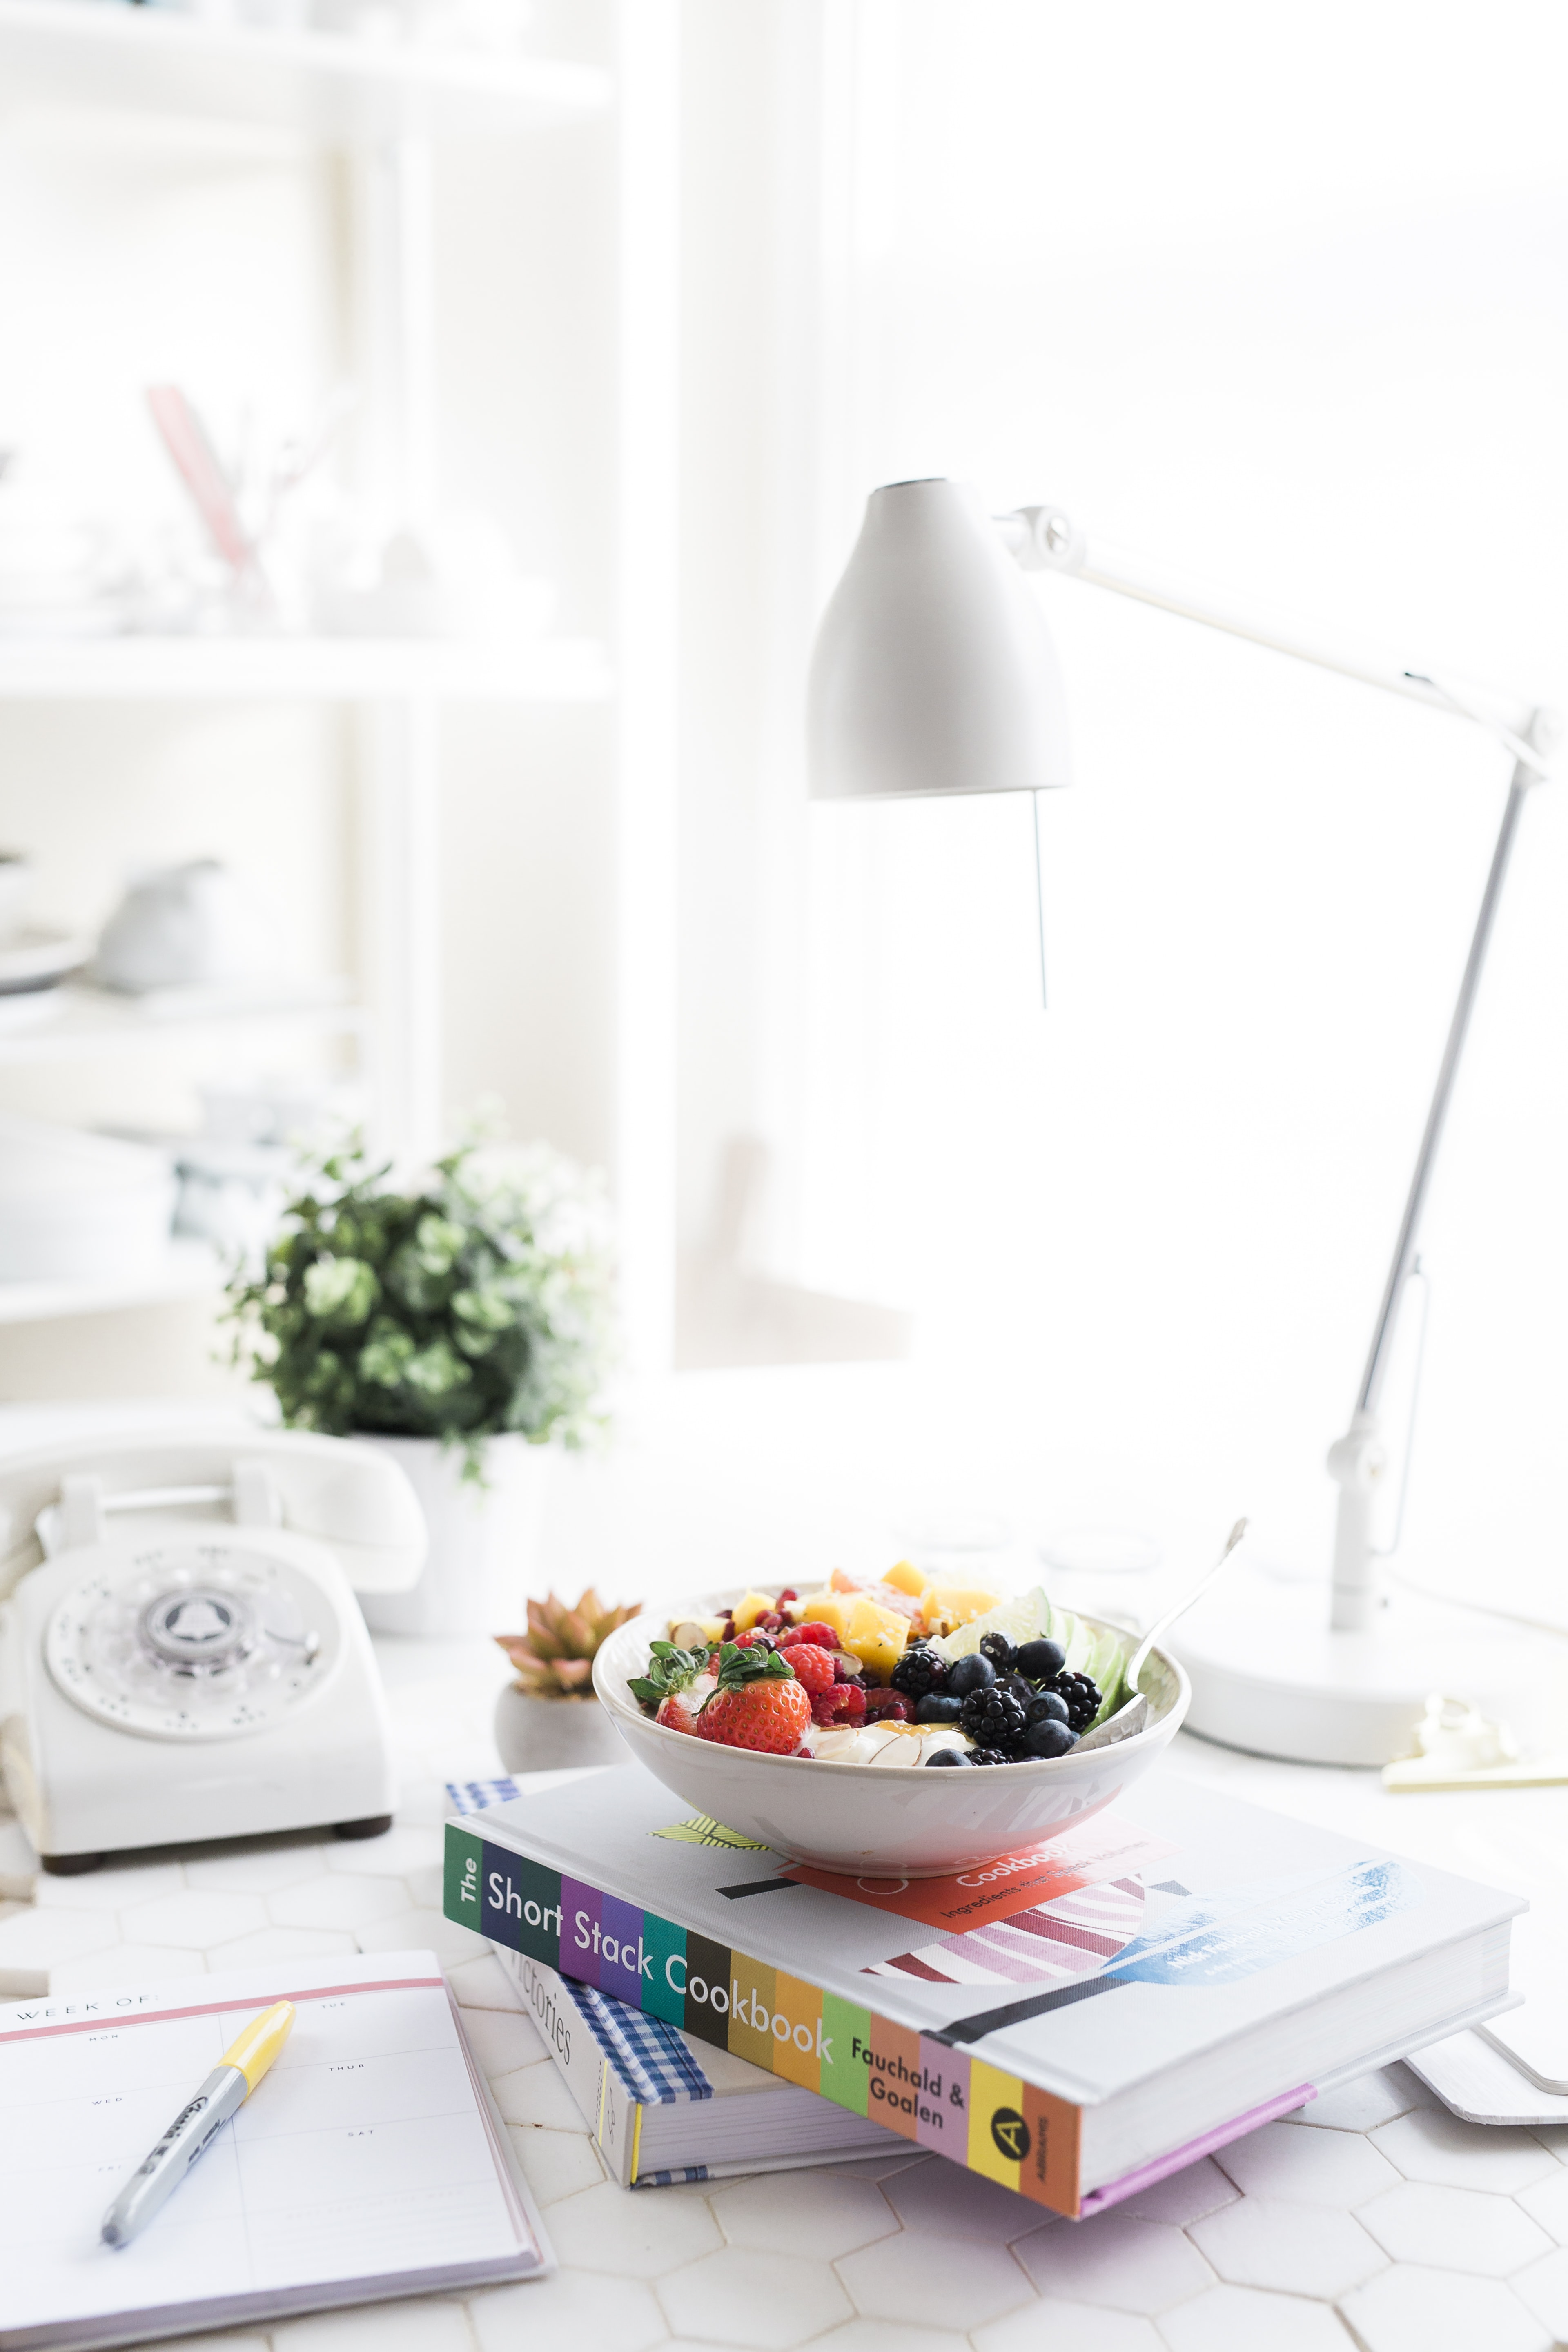 A fruit salad in a bowl on top of a colorful cookbook on a desk